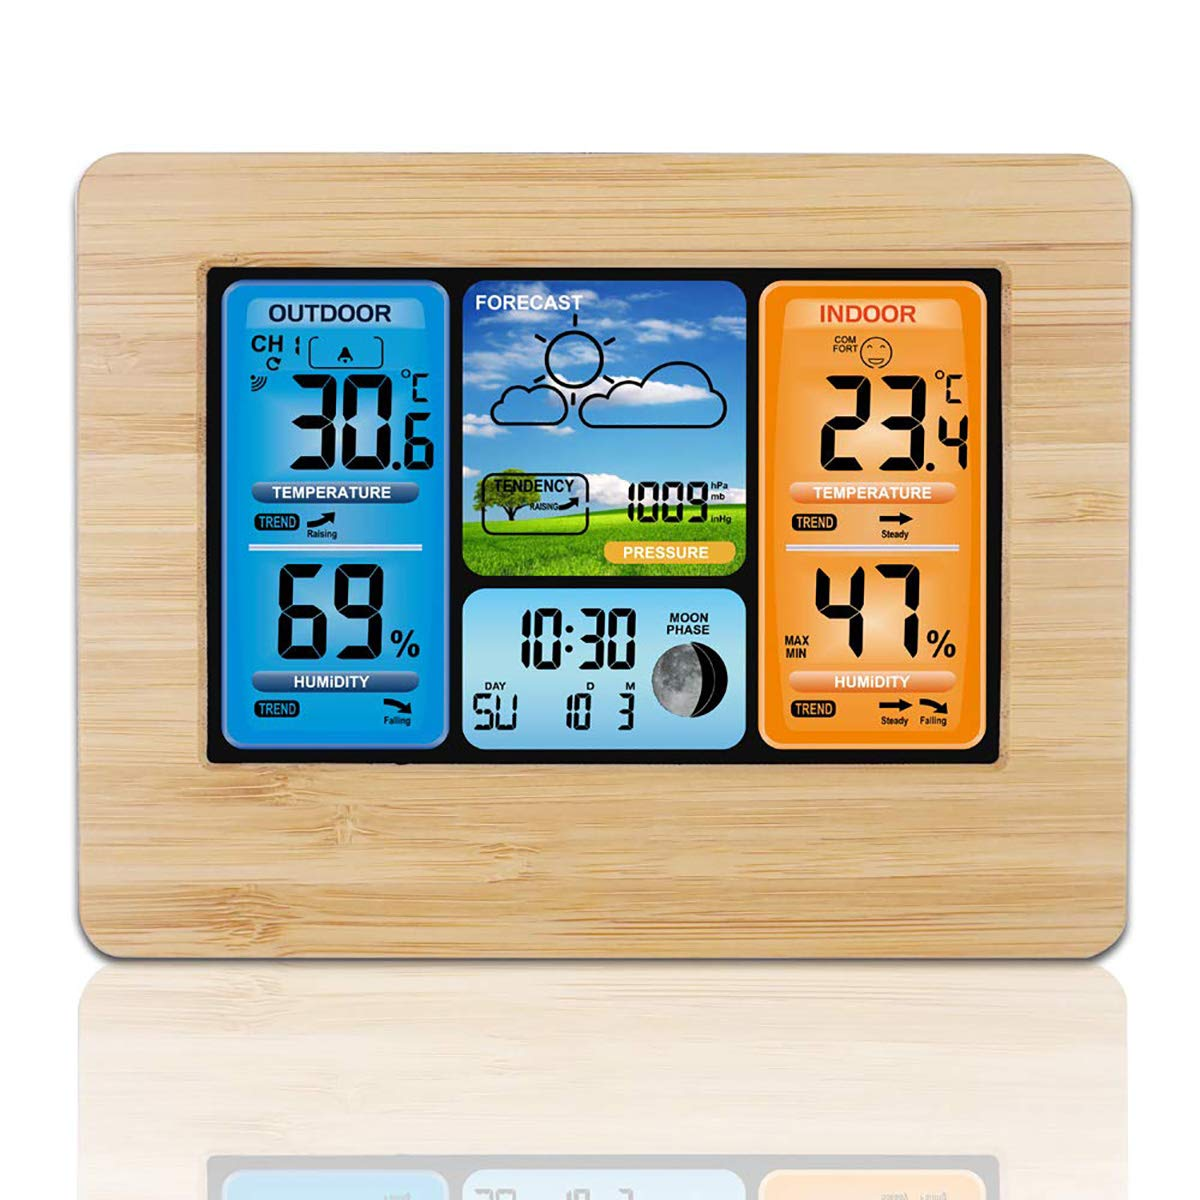 WONFAST Wireless Weather Station Clock with Outdoor Sensor, Weather Monitoring Home Alarm Clocks with Min/Max Display of Thermometer and Hygrometer,Barometer Alarm Moon Phrase (Yellow Bamboo) by WONFAST